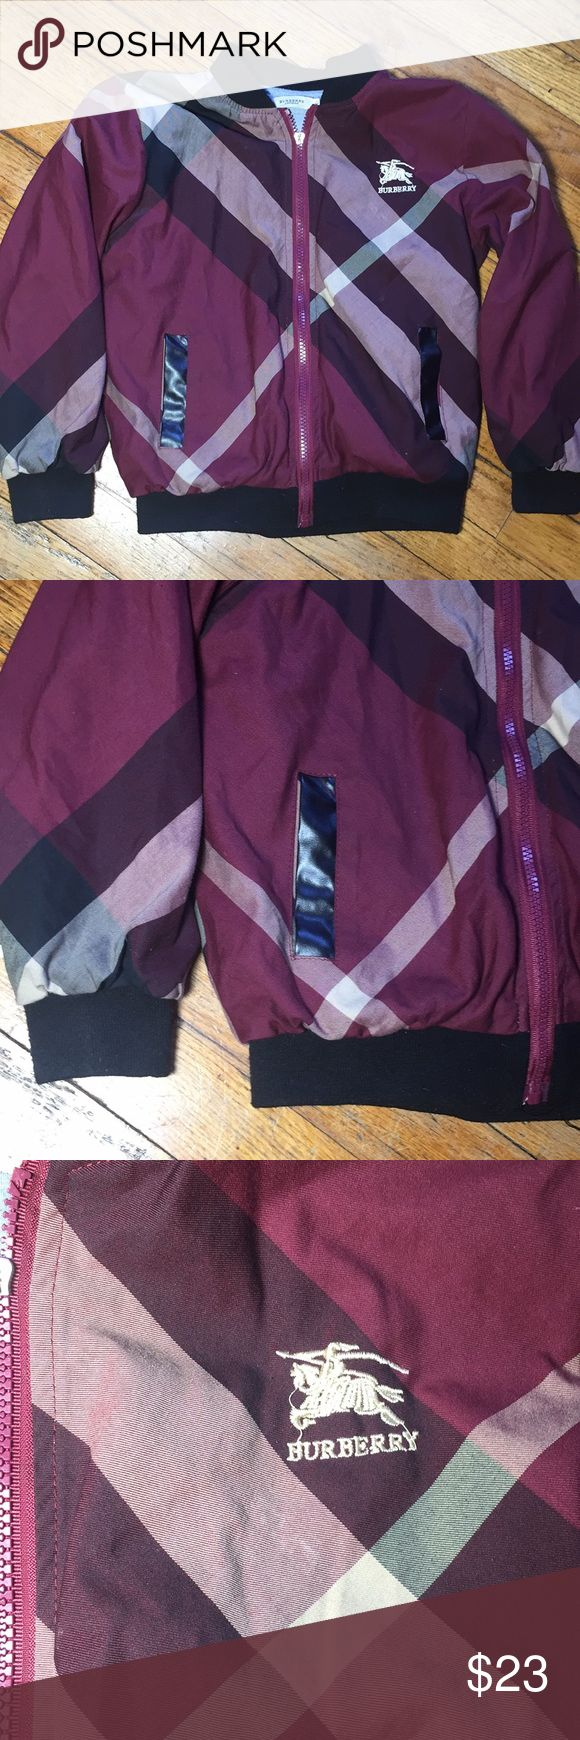 Burberry bomber jacket size 6 (kids) Ok condition. Selling it for low cost since im not sure if it's authentic Color is plum Any questions just ask Burberry Jackets & Coats Puffers